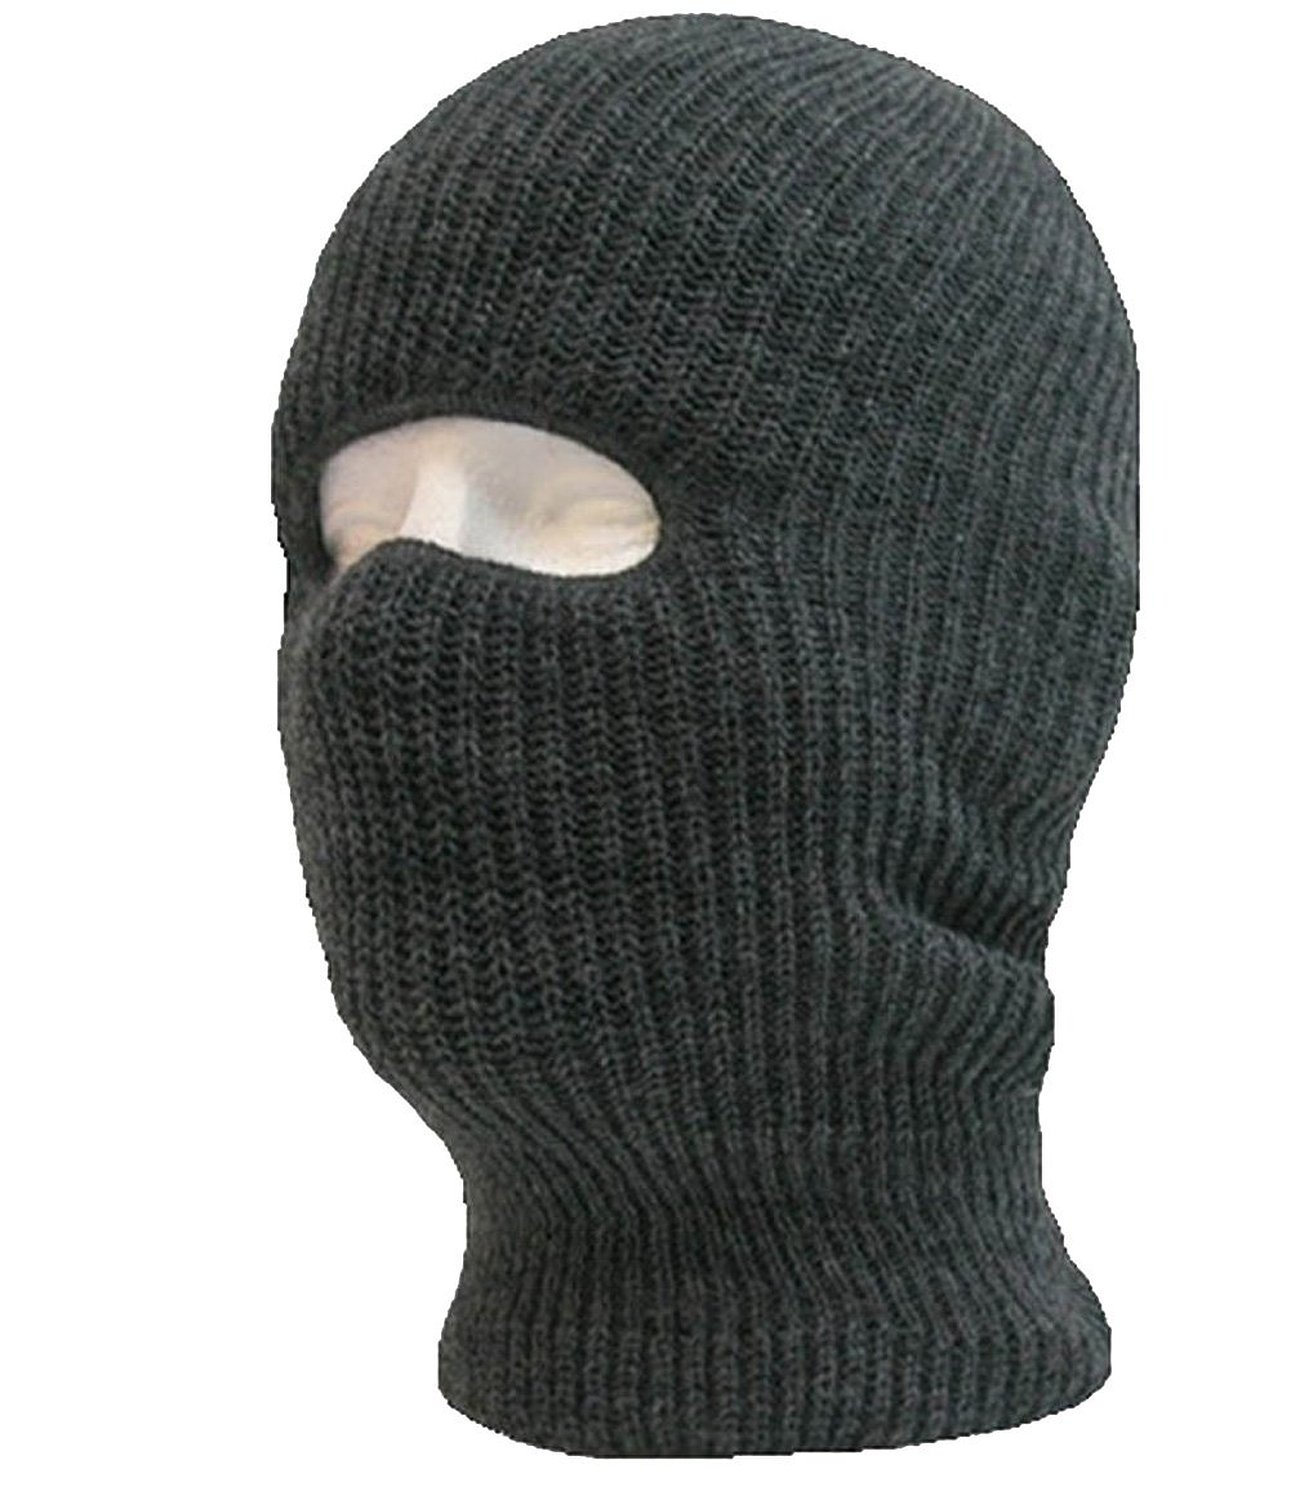 Cheap Ski Mask Knit Pattern, find Ski Mask Knit Pattern deals on ...